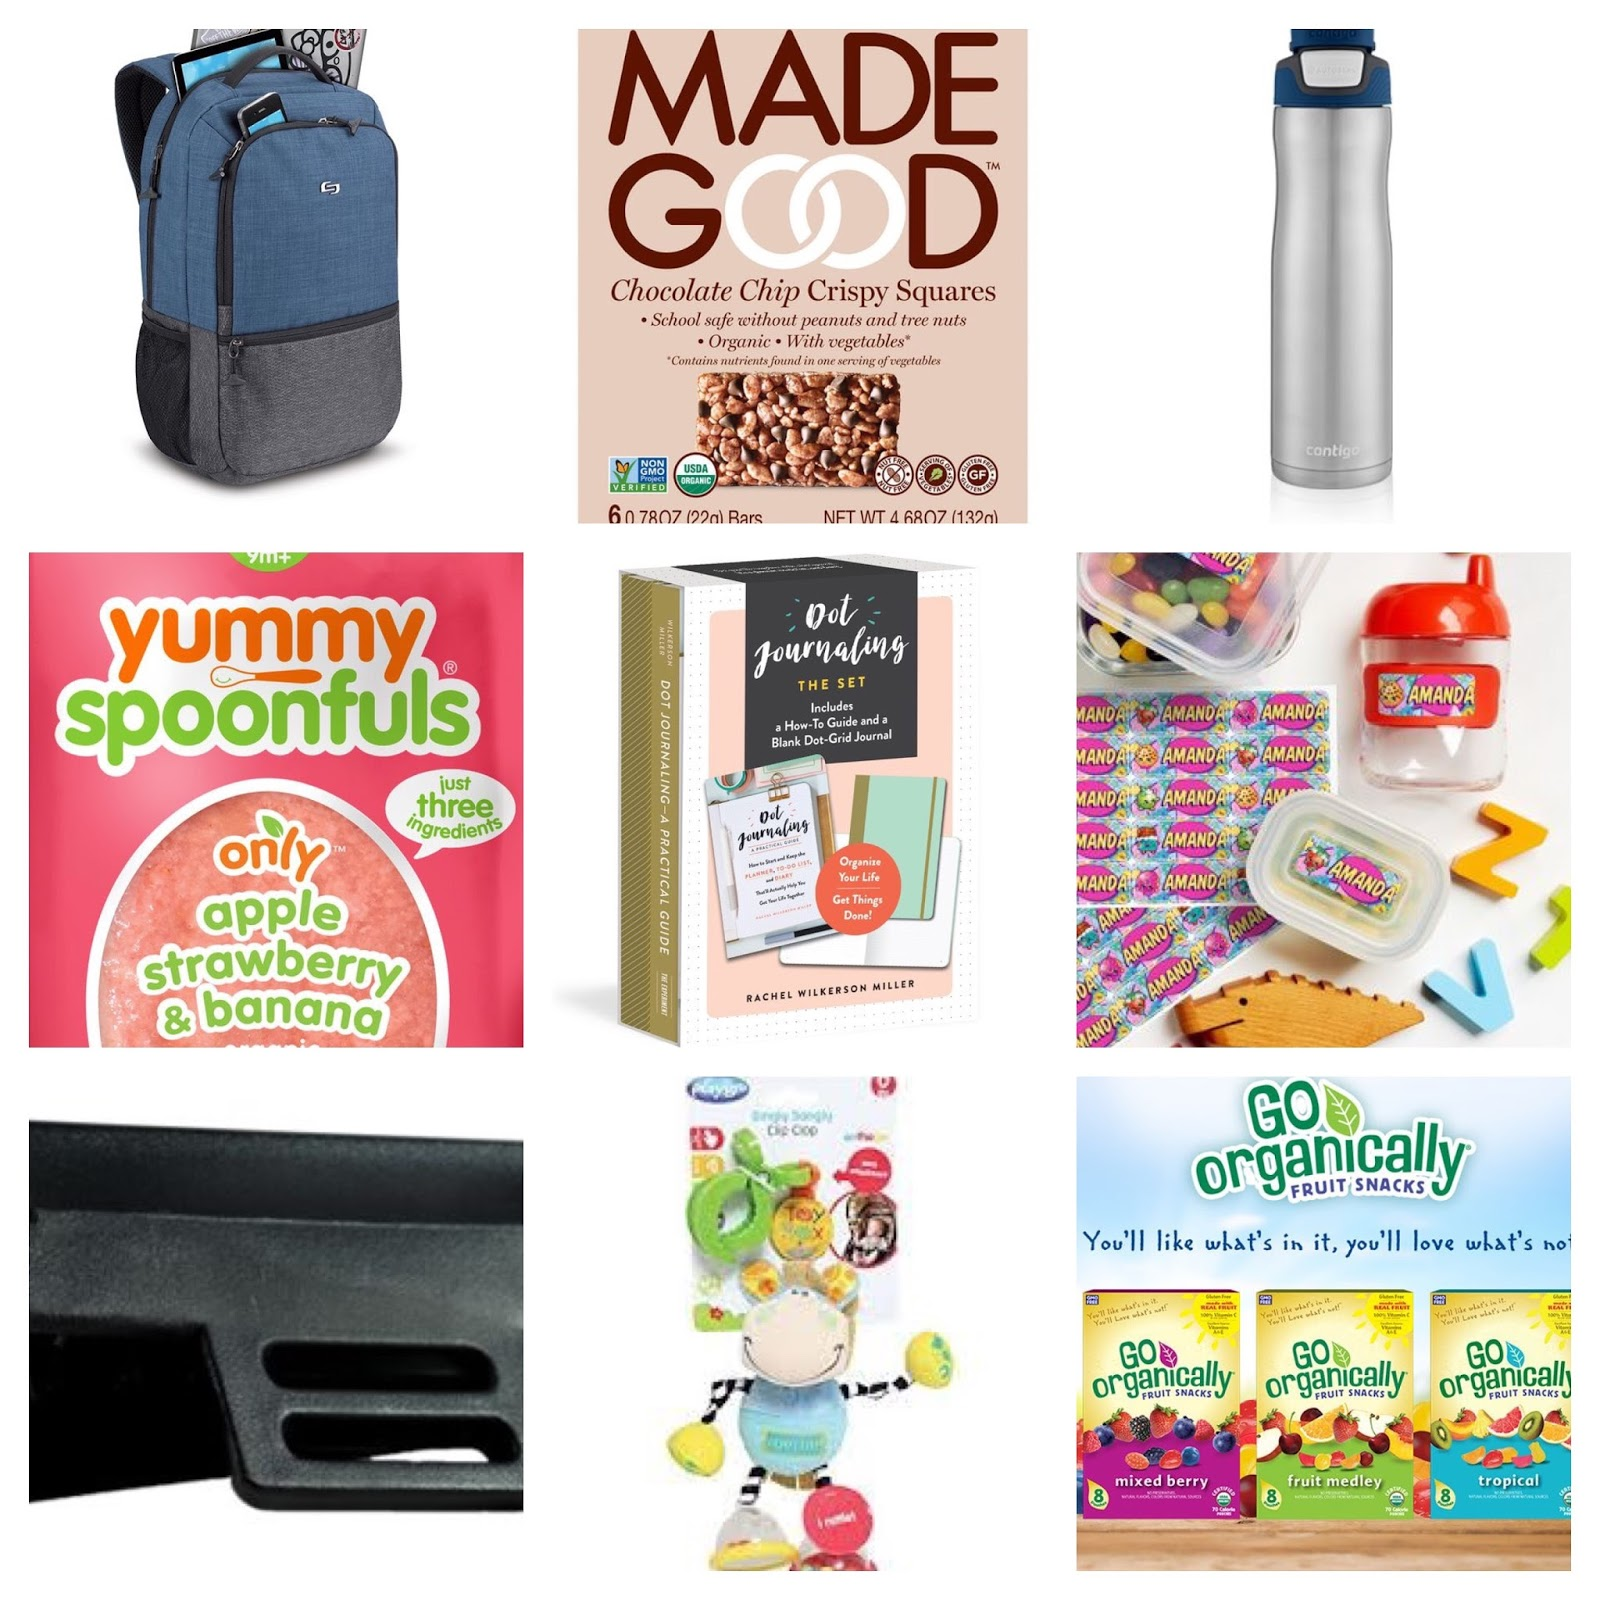 3557eb2e16 17. Contigo® | AUTOSEAL® Chill Stainless Steel Water Bottle | 24 oz 18.  Yummy Spoonfuls | Only Apple Strawberry & Banana Organic Baby Food 19.